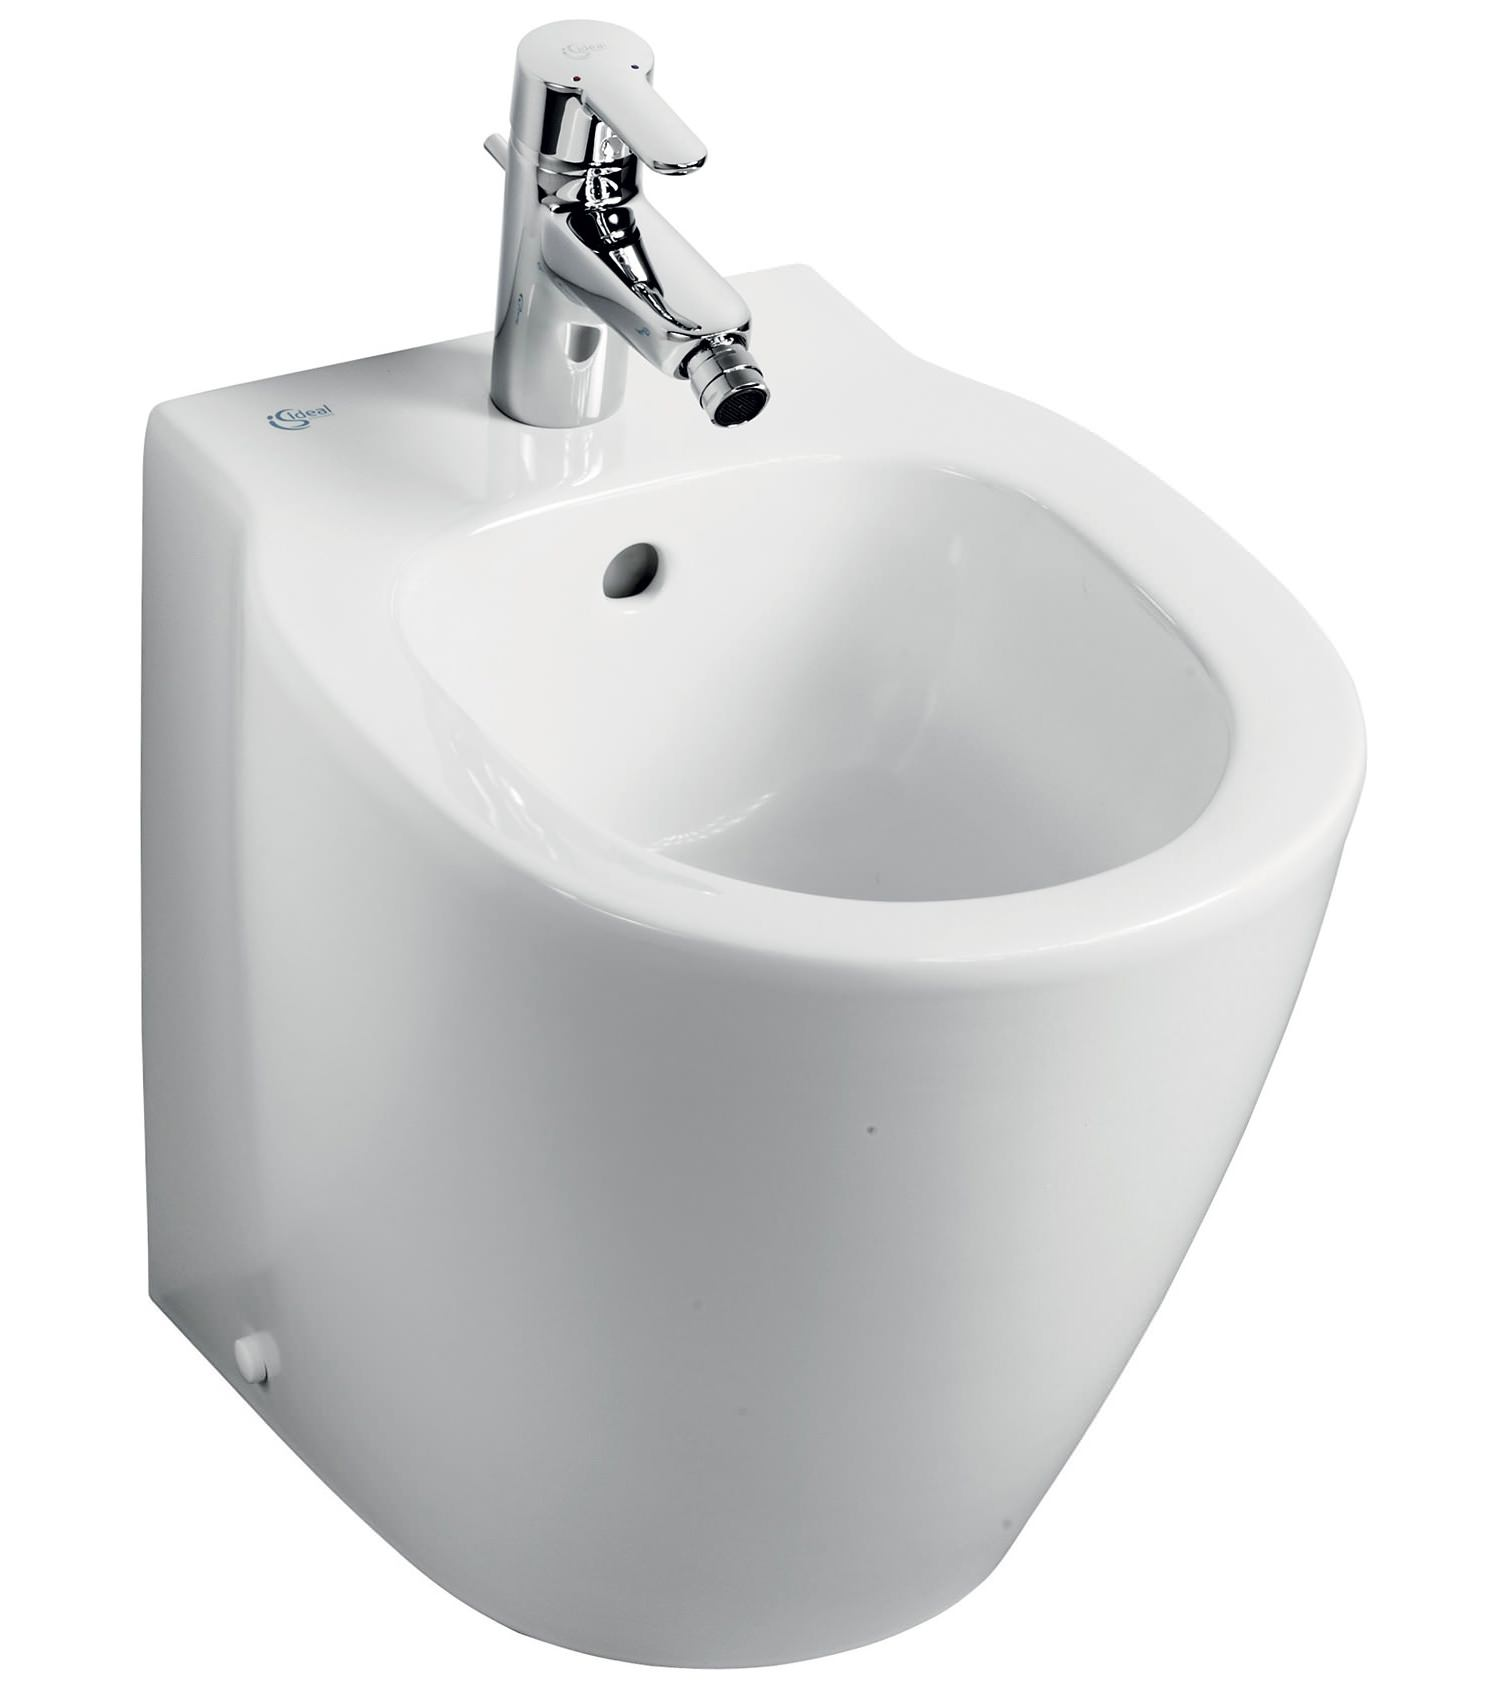 Ideal standard concept space compact back to wall bidet 480mm - Small toilets for tight spaces concept ...